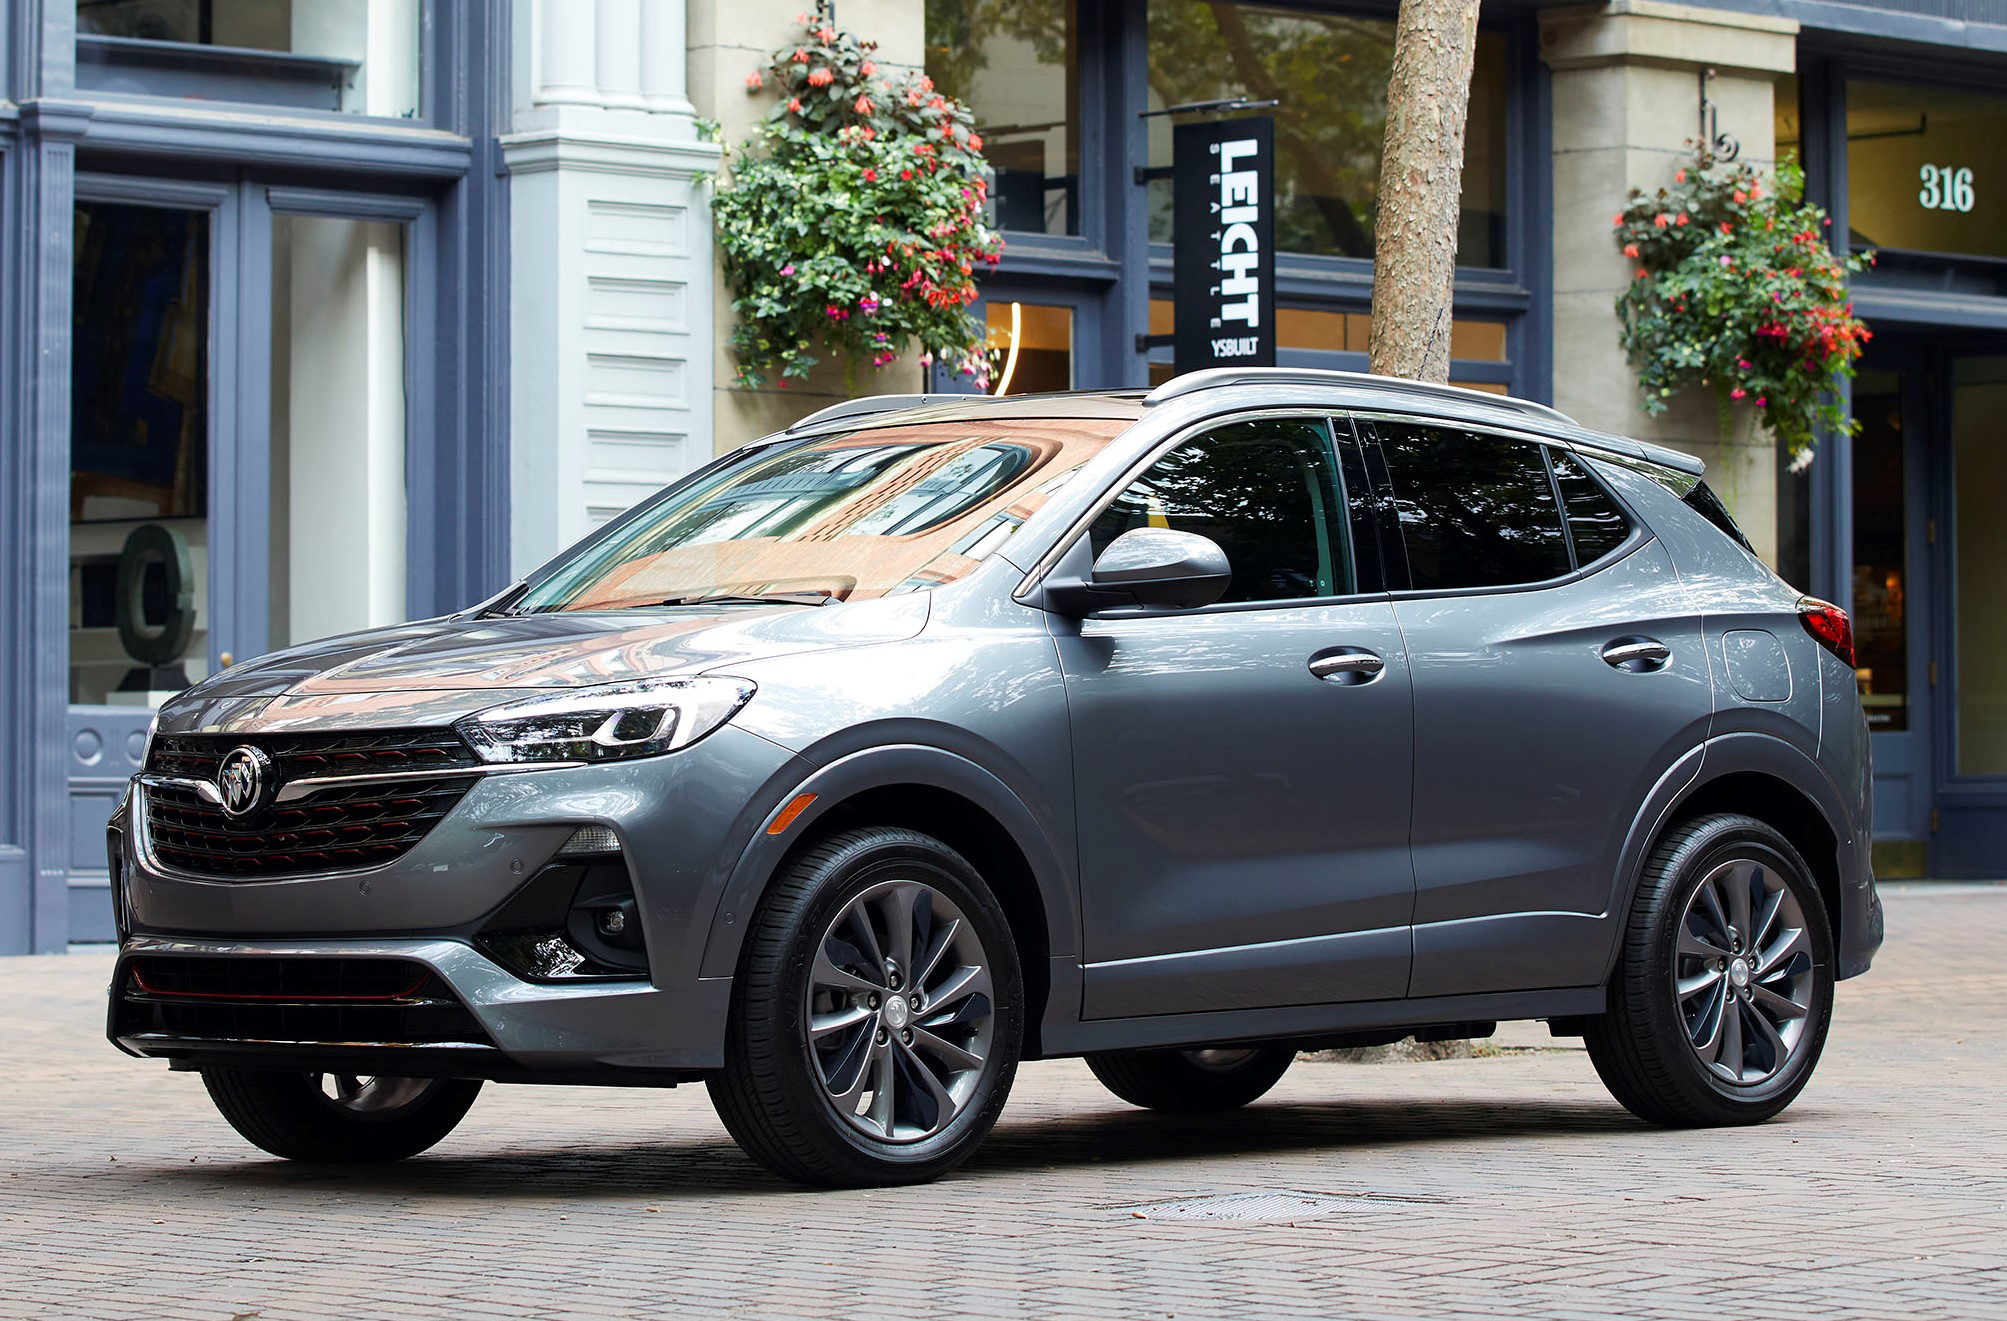 Buick Encore Gx Discount 0 Percent Apr, Cash March 2020 | Gm 2022 Buick Encore Gx Incentives, Inventory, Lease